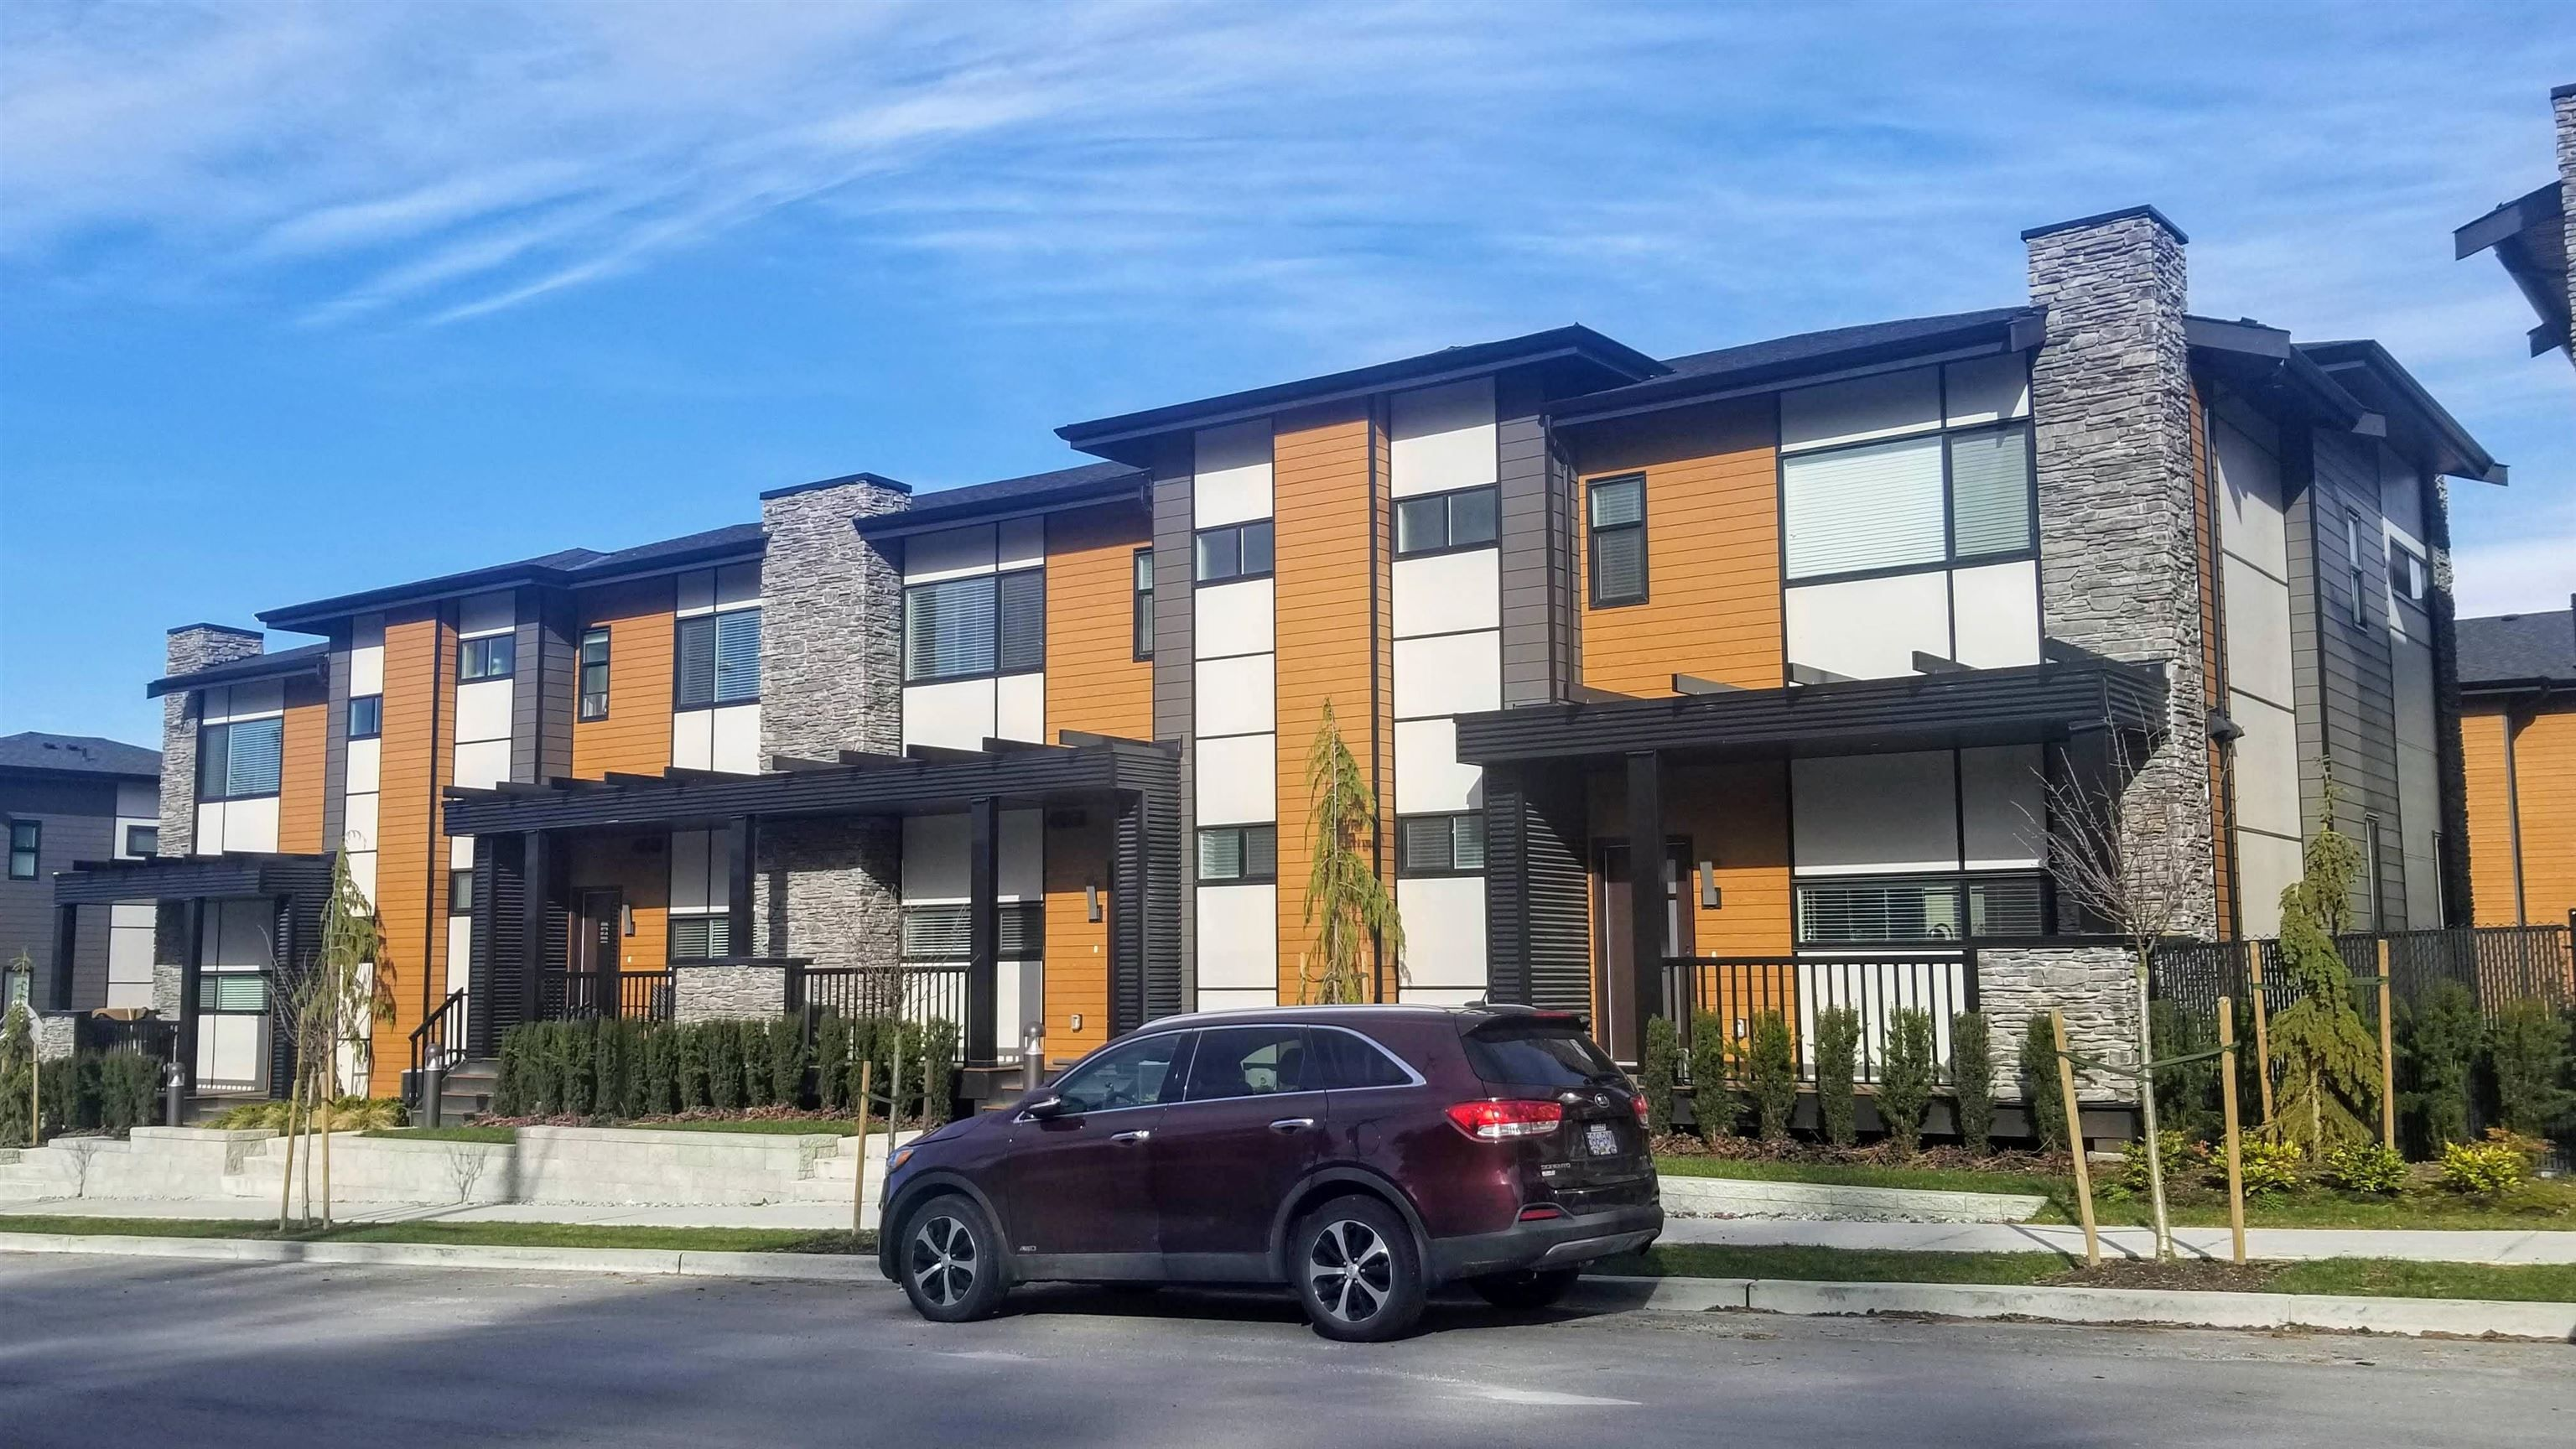 """Main Photo: 4 33209 CHERRY Avenue in Mission: Mission BC Townhouse for sale in """"58 ON CHERRY HILL"""" : MLS®# R2624783"""